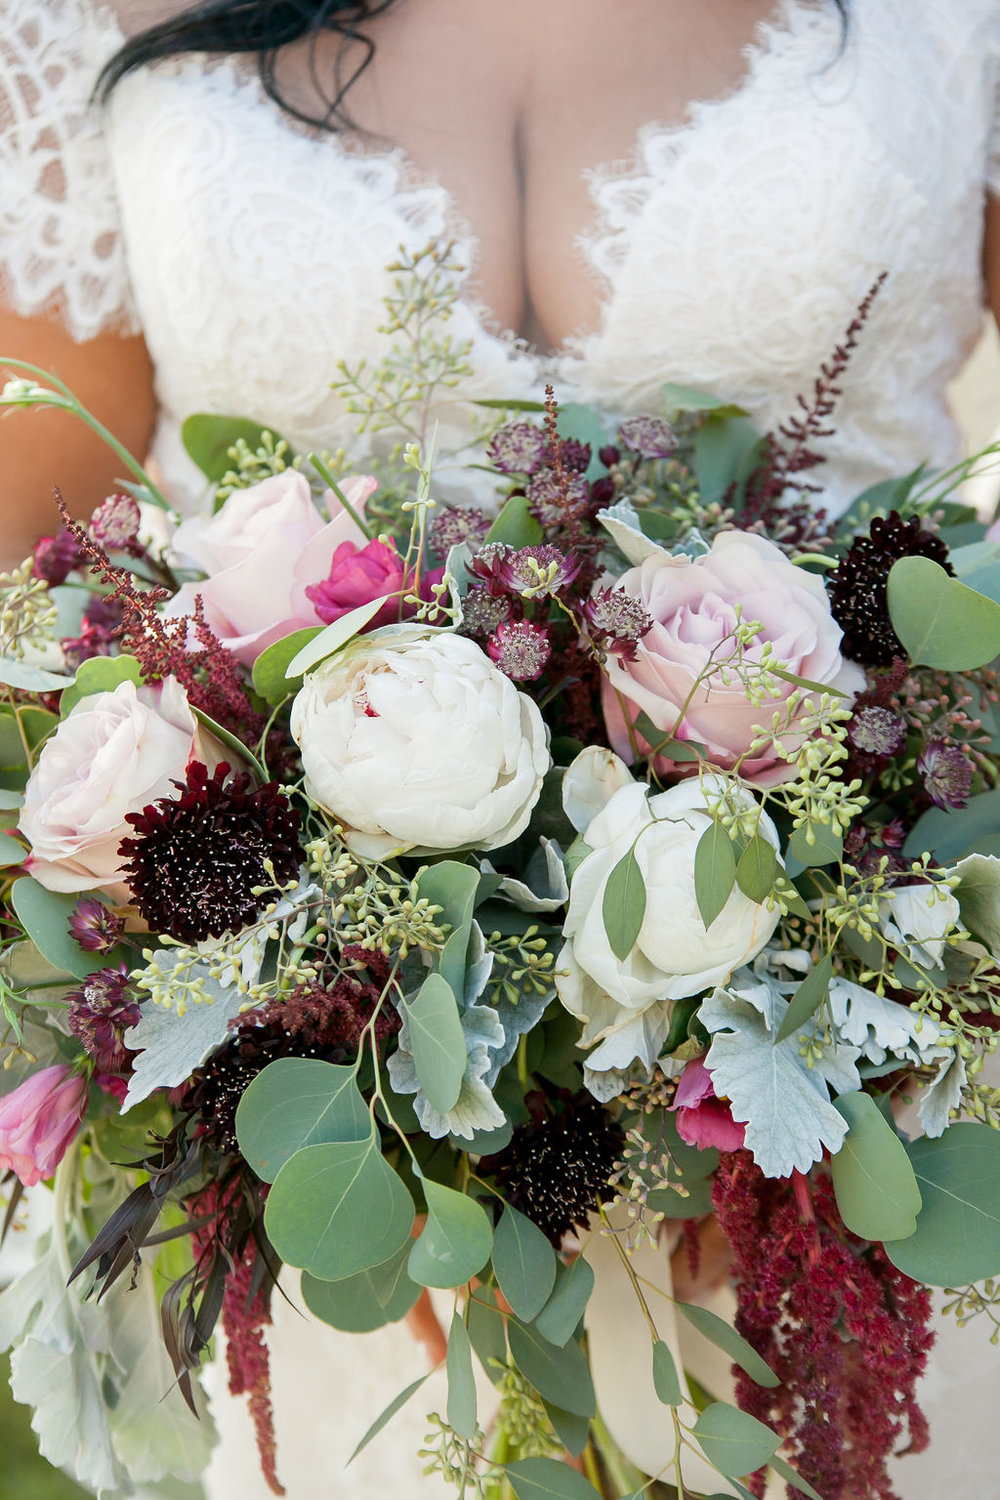 Bluegrass Chic - Bridal bouquet wine colored flowers